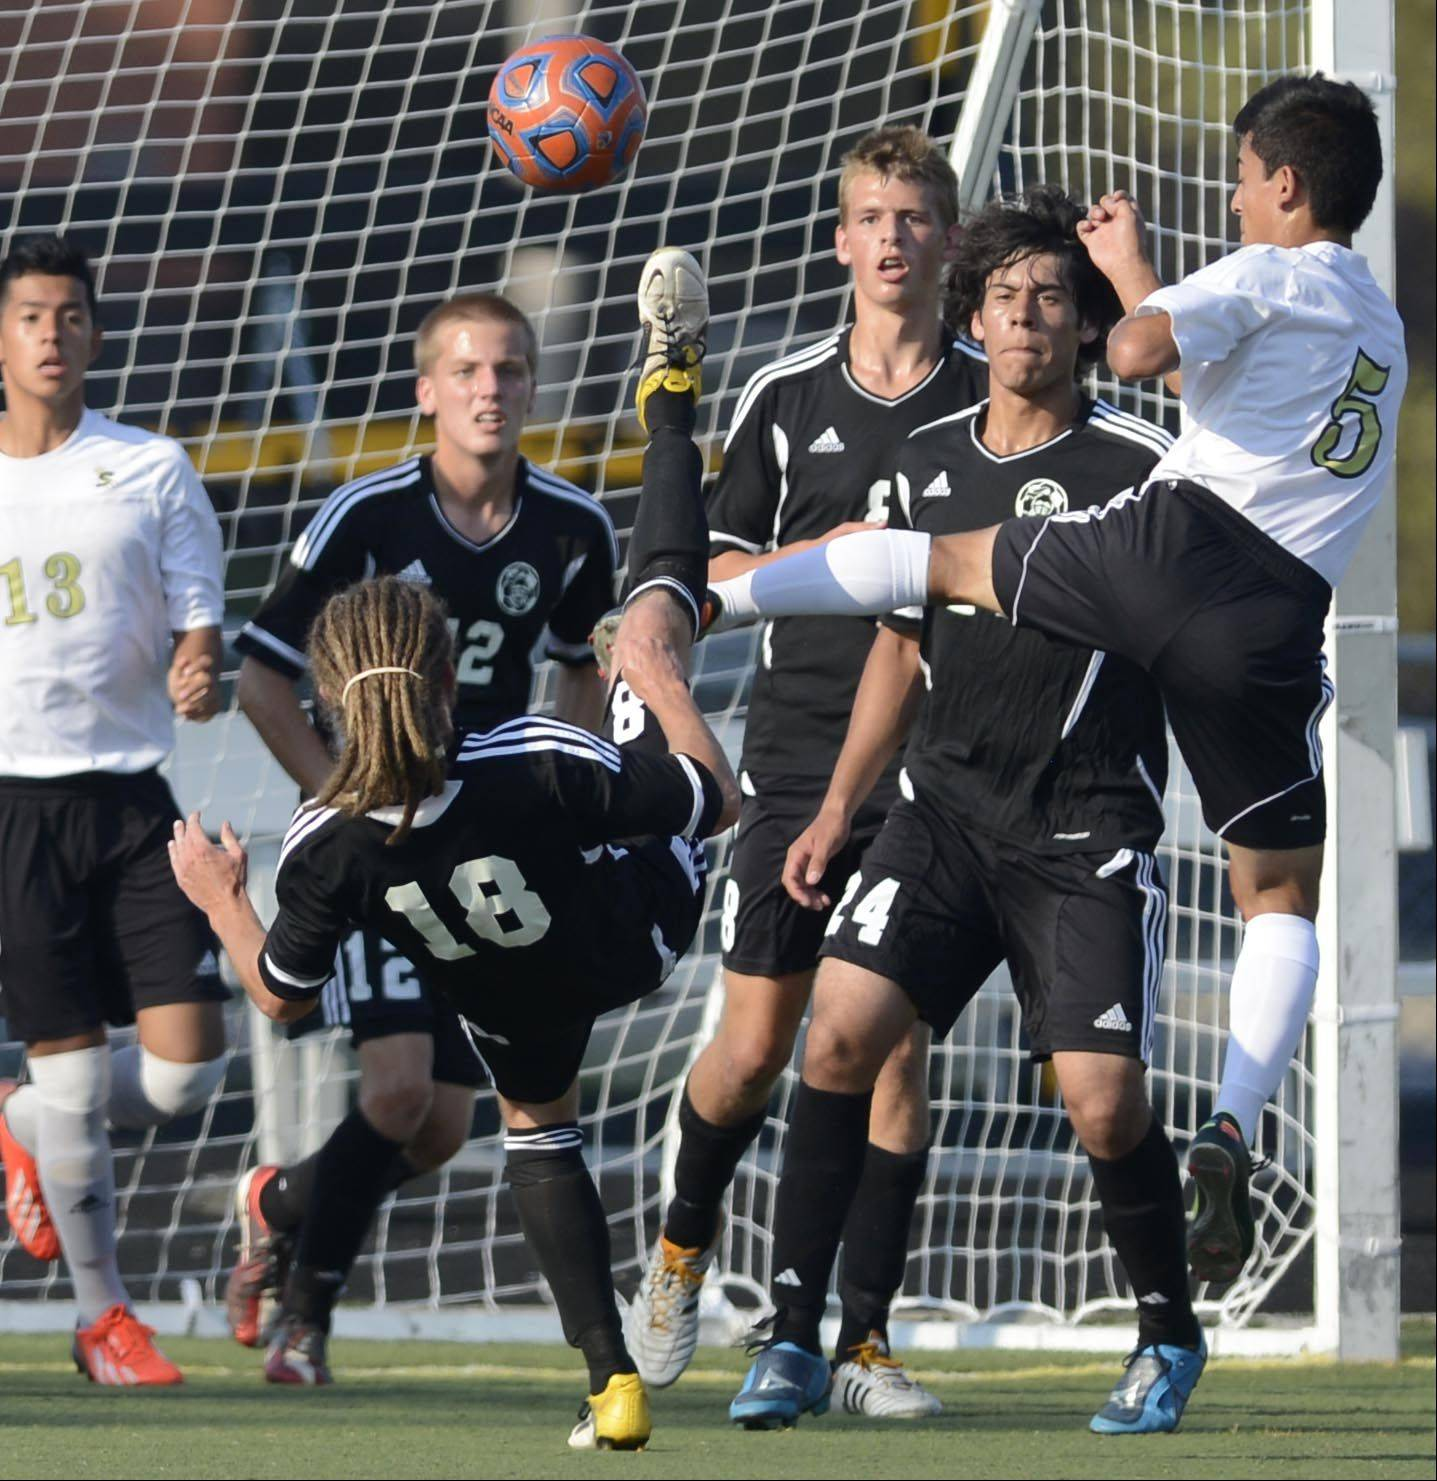 Kaneland's Matt Vander Sande bicycle kicks the ball away from his own goal as Streamwood's Juan Munoz tries to stop him Monday in Streamwood.